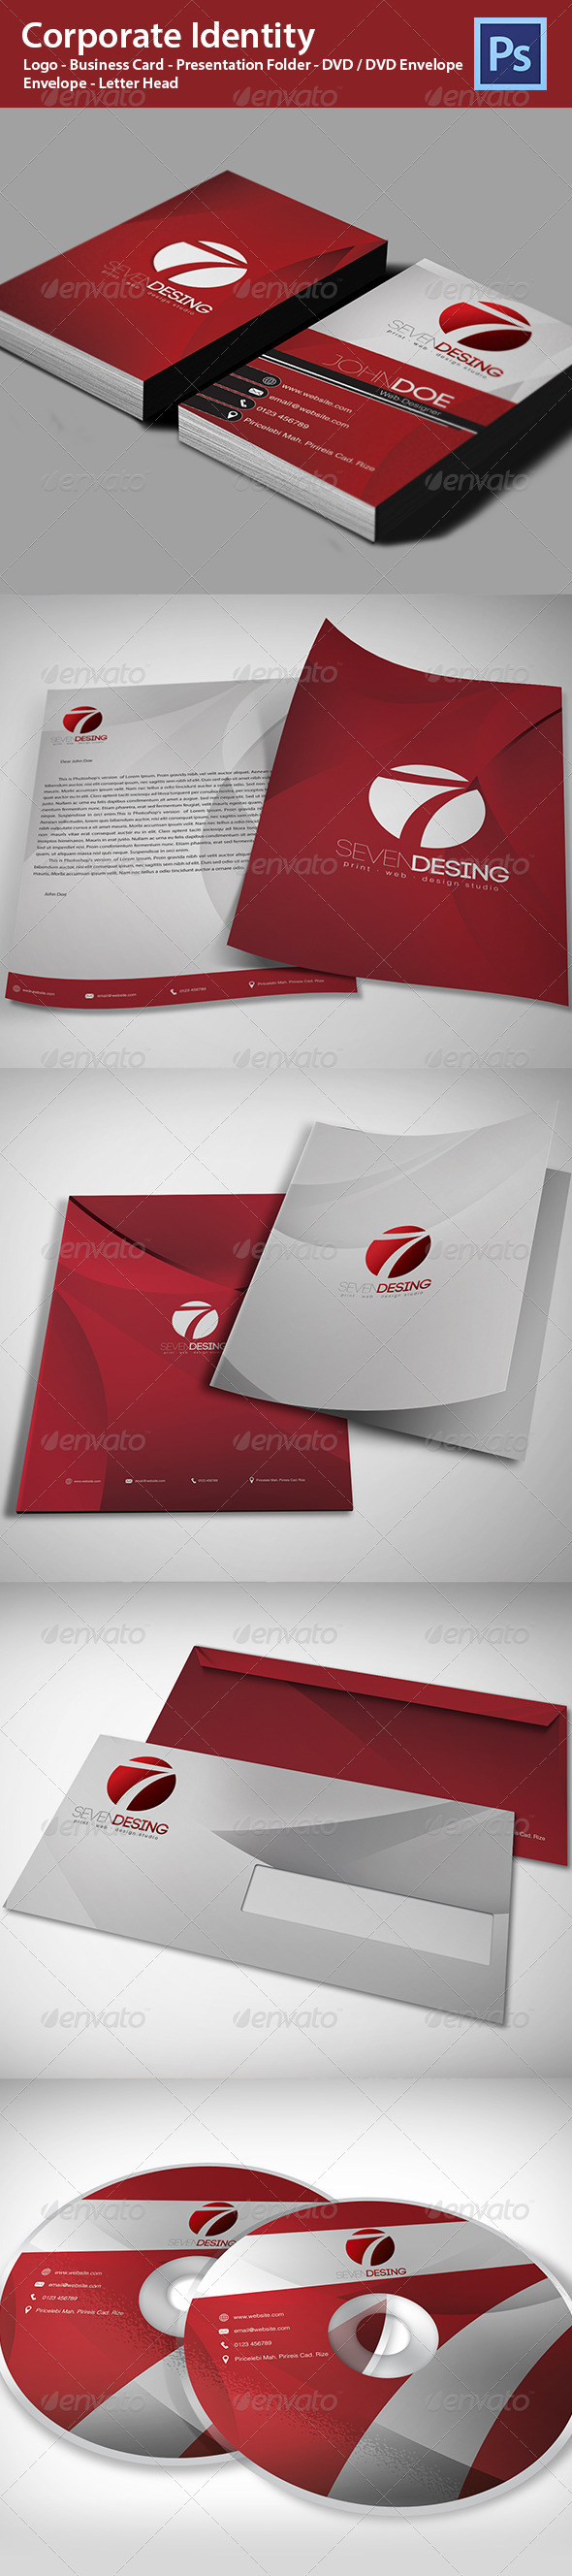 GraphicRiver Corporate Identity 4754098